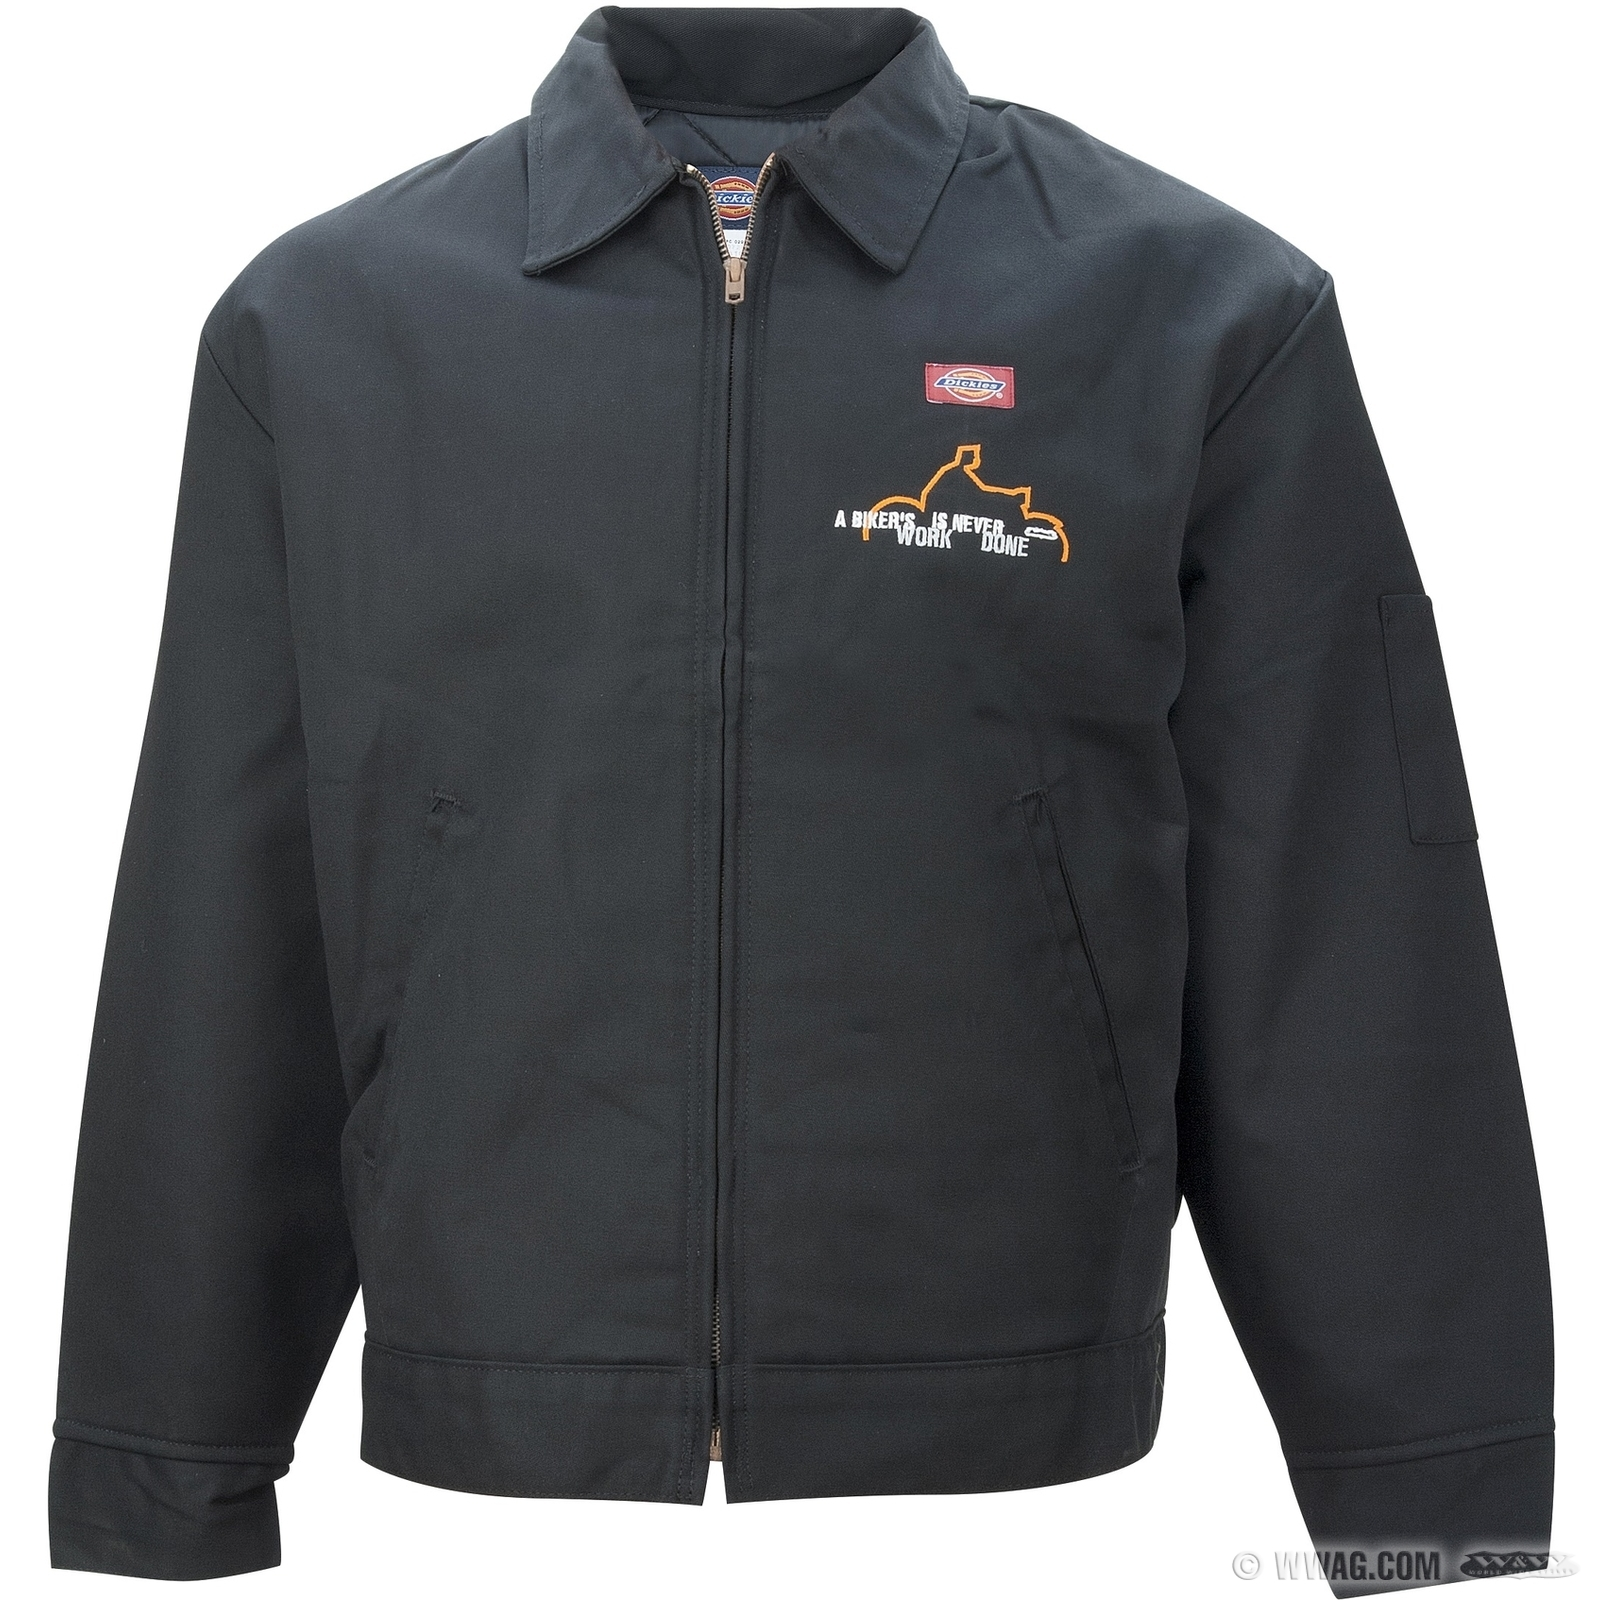 9720231ab W&W Cycles - Apparel and Helmets > W&W Cycles Team Jacket